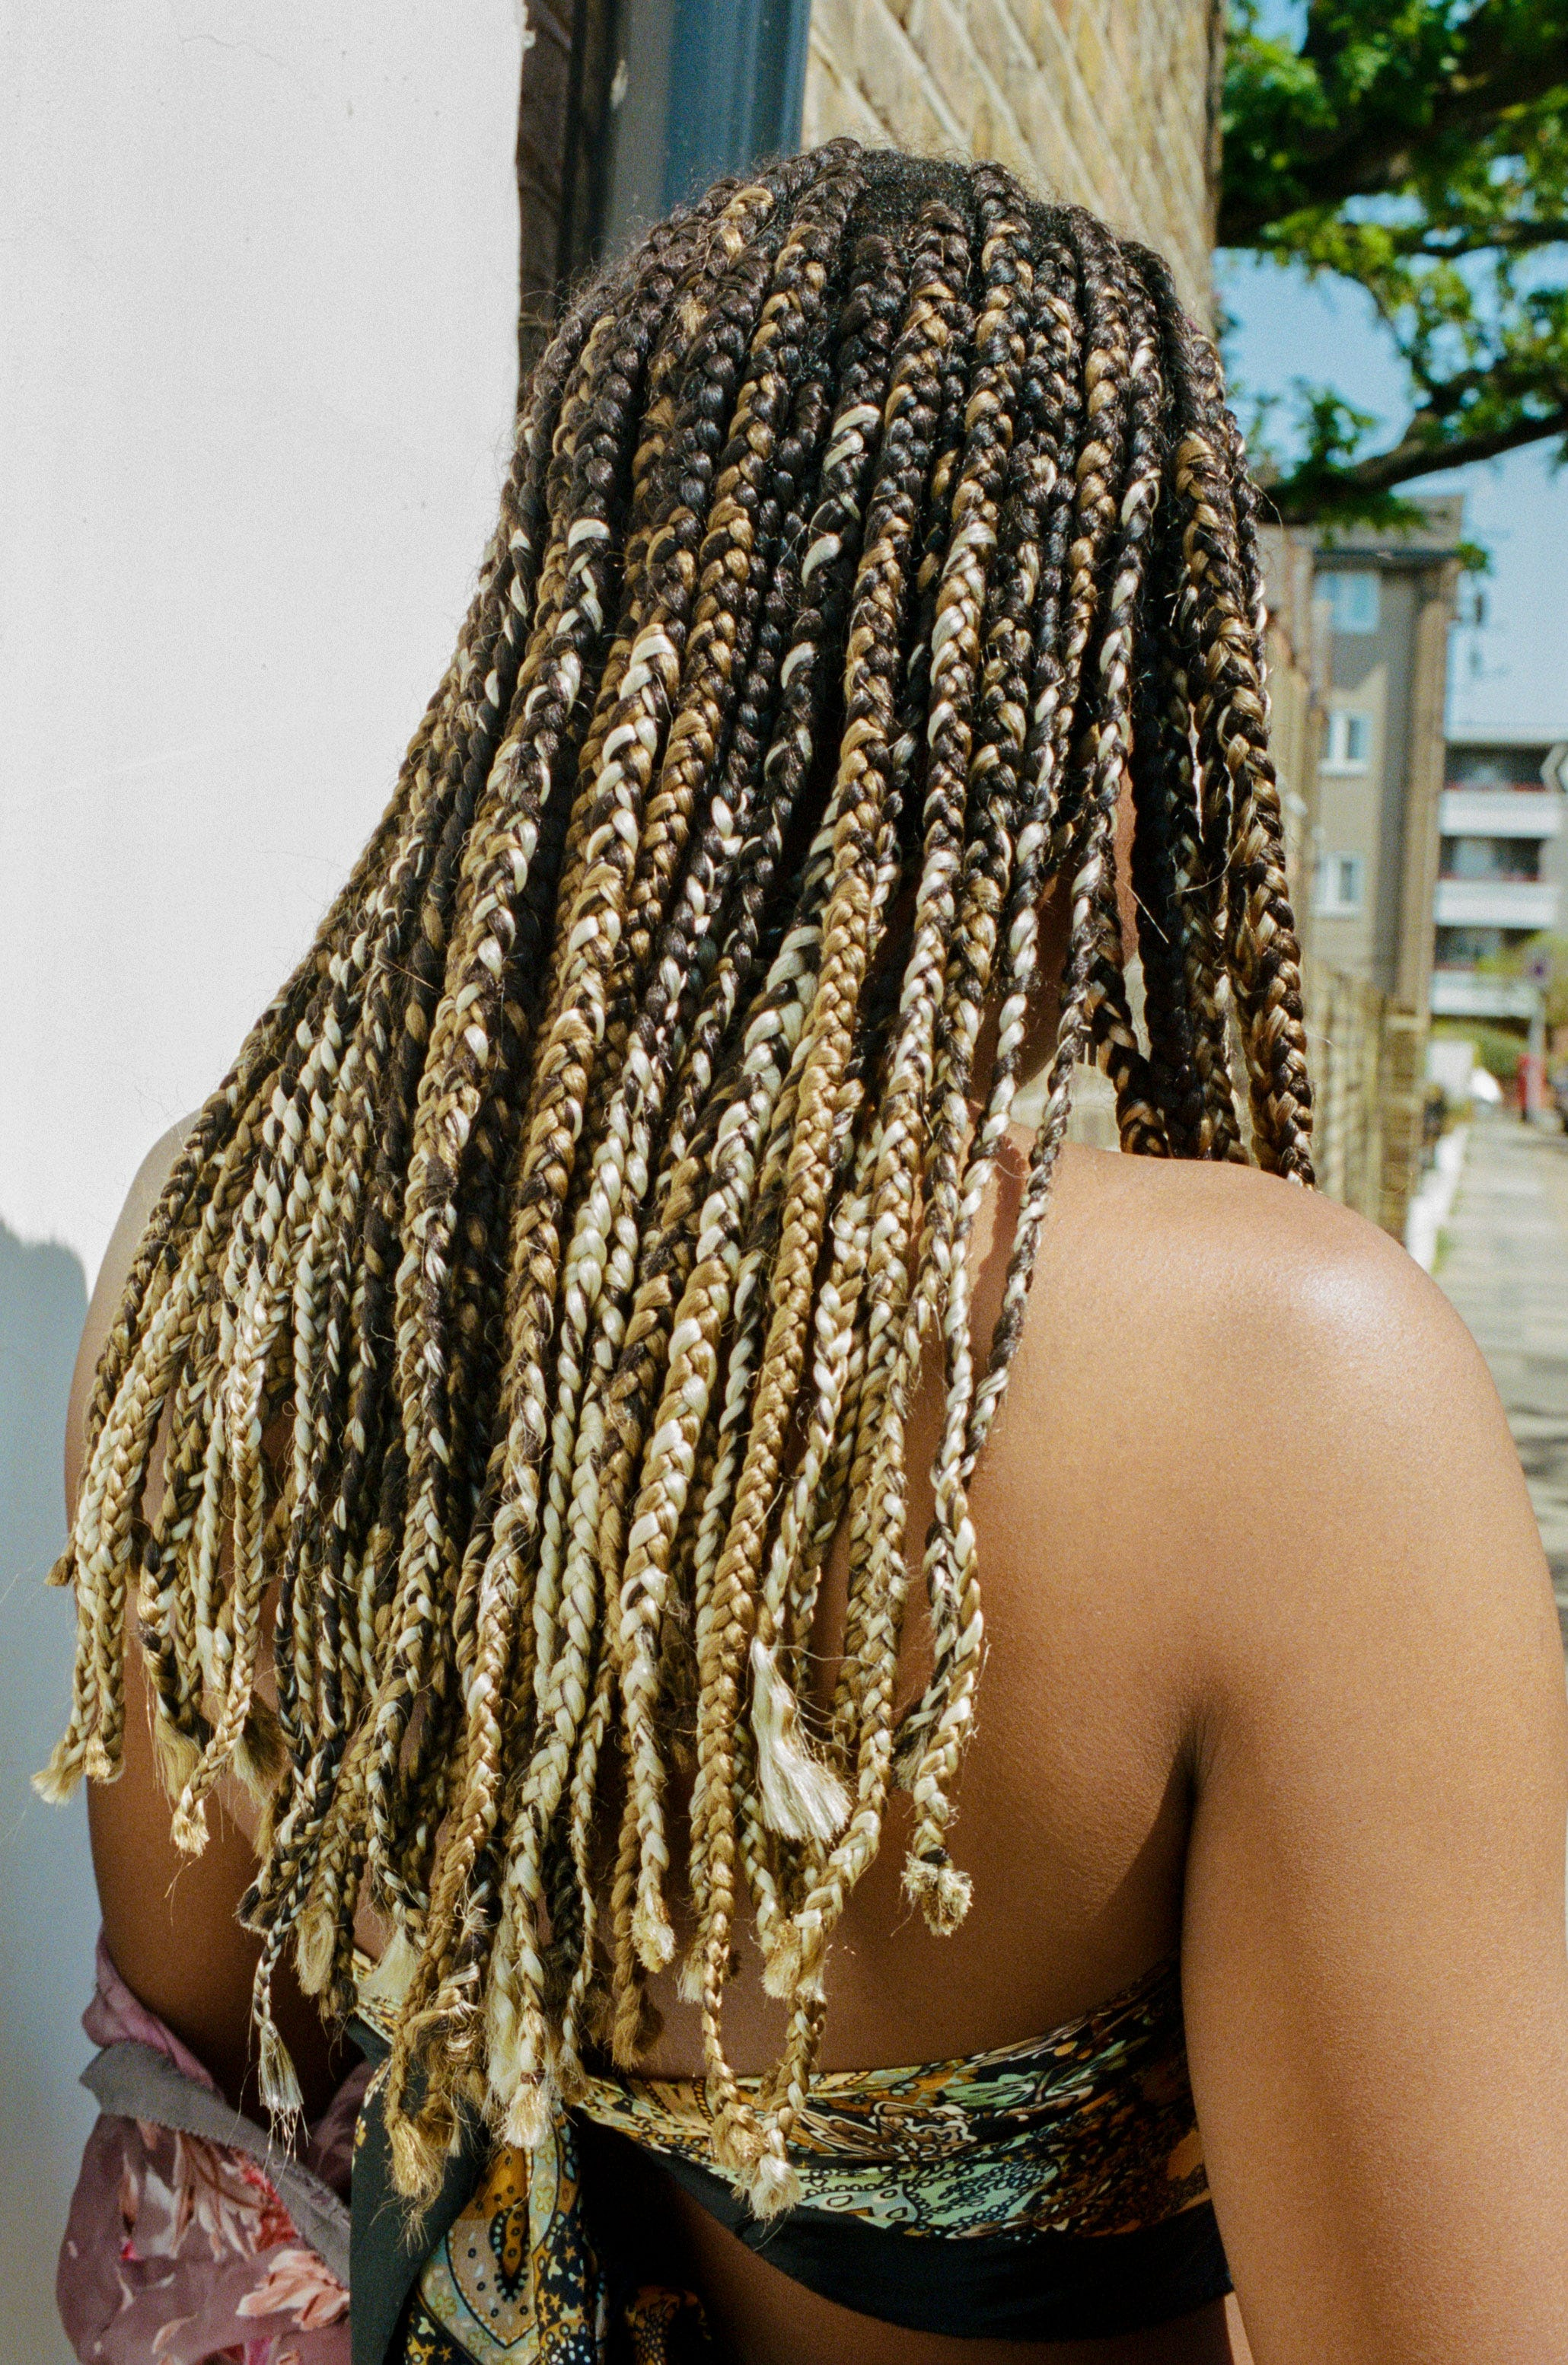 Braids Are Causing Unbearable Itching & There's A Sinister Reason Behind It